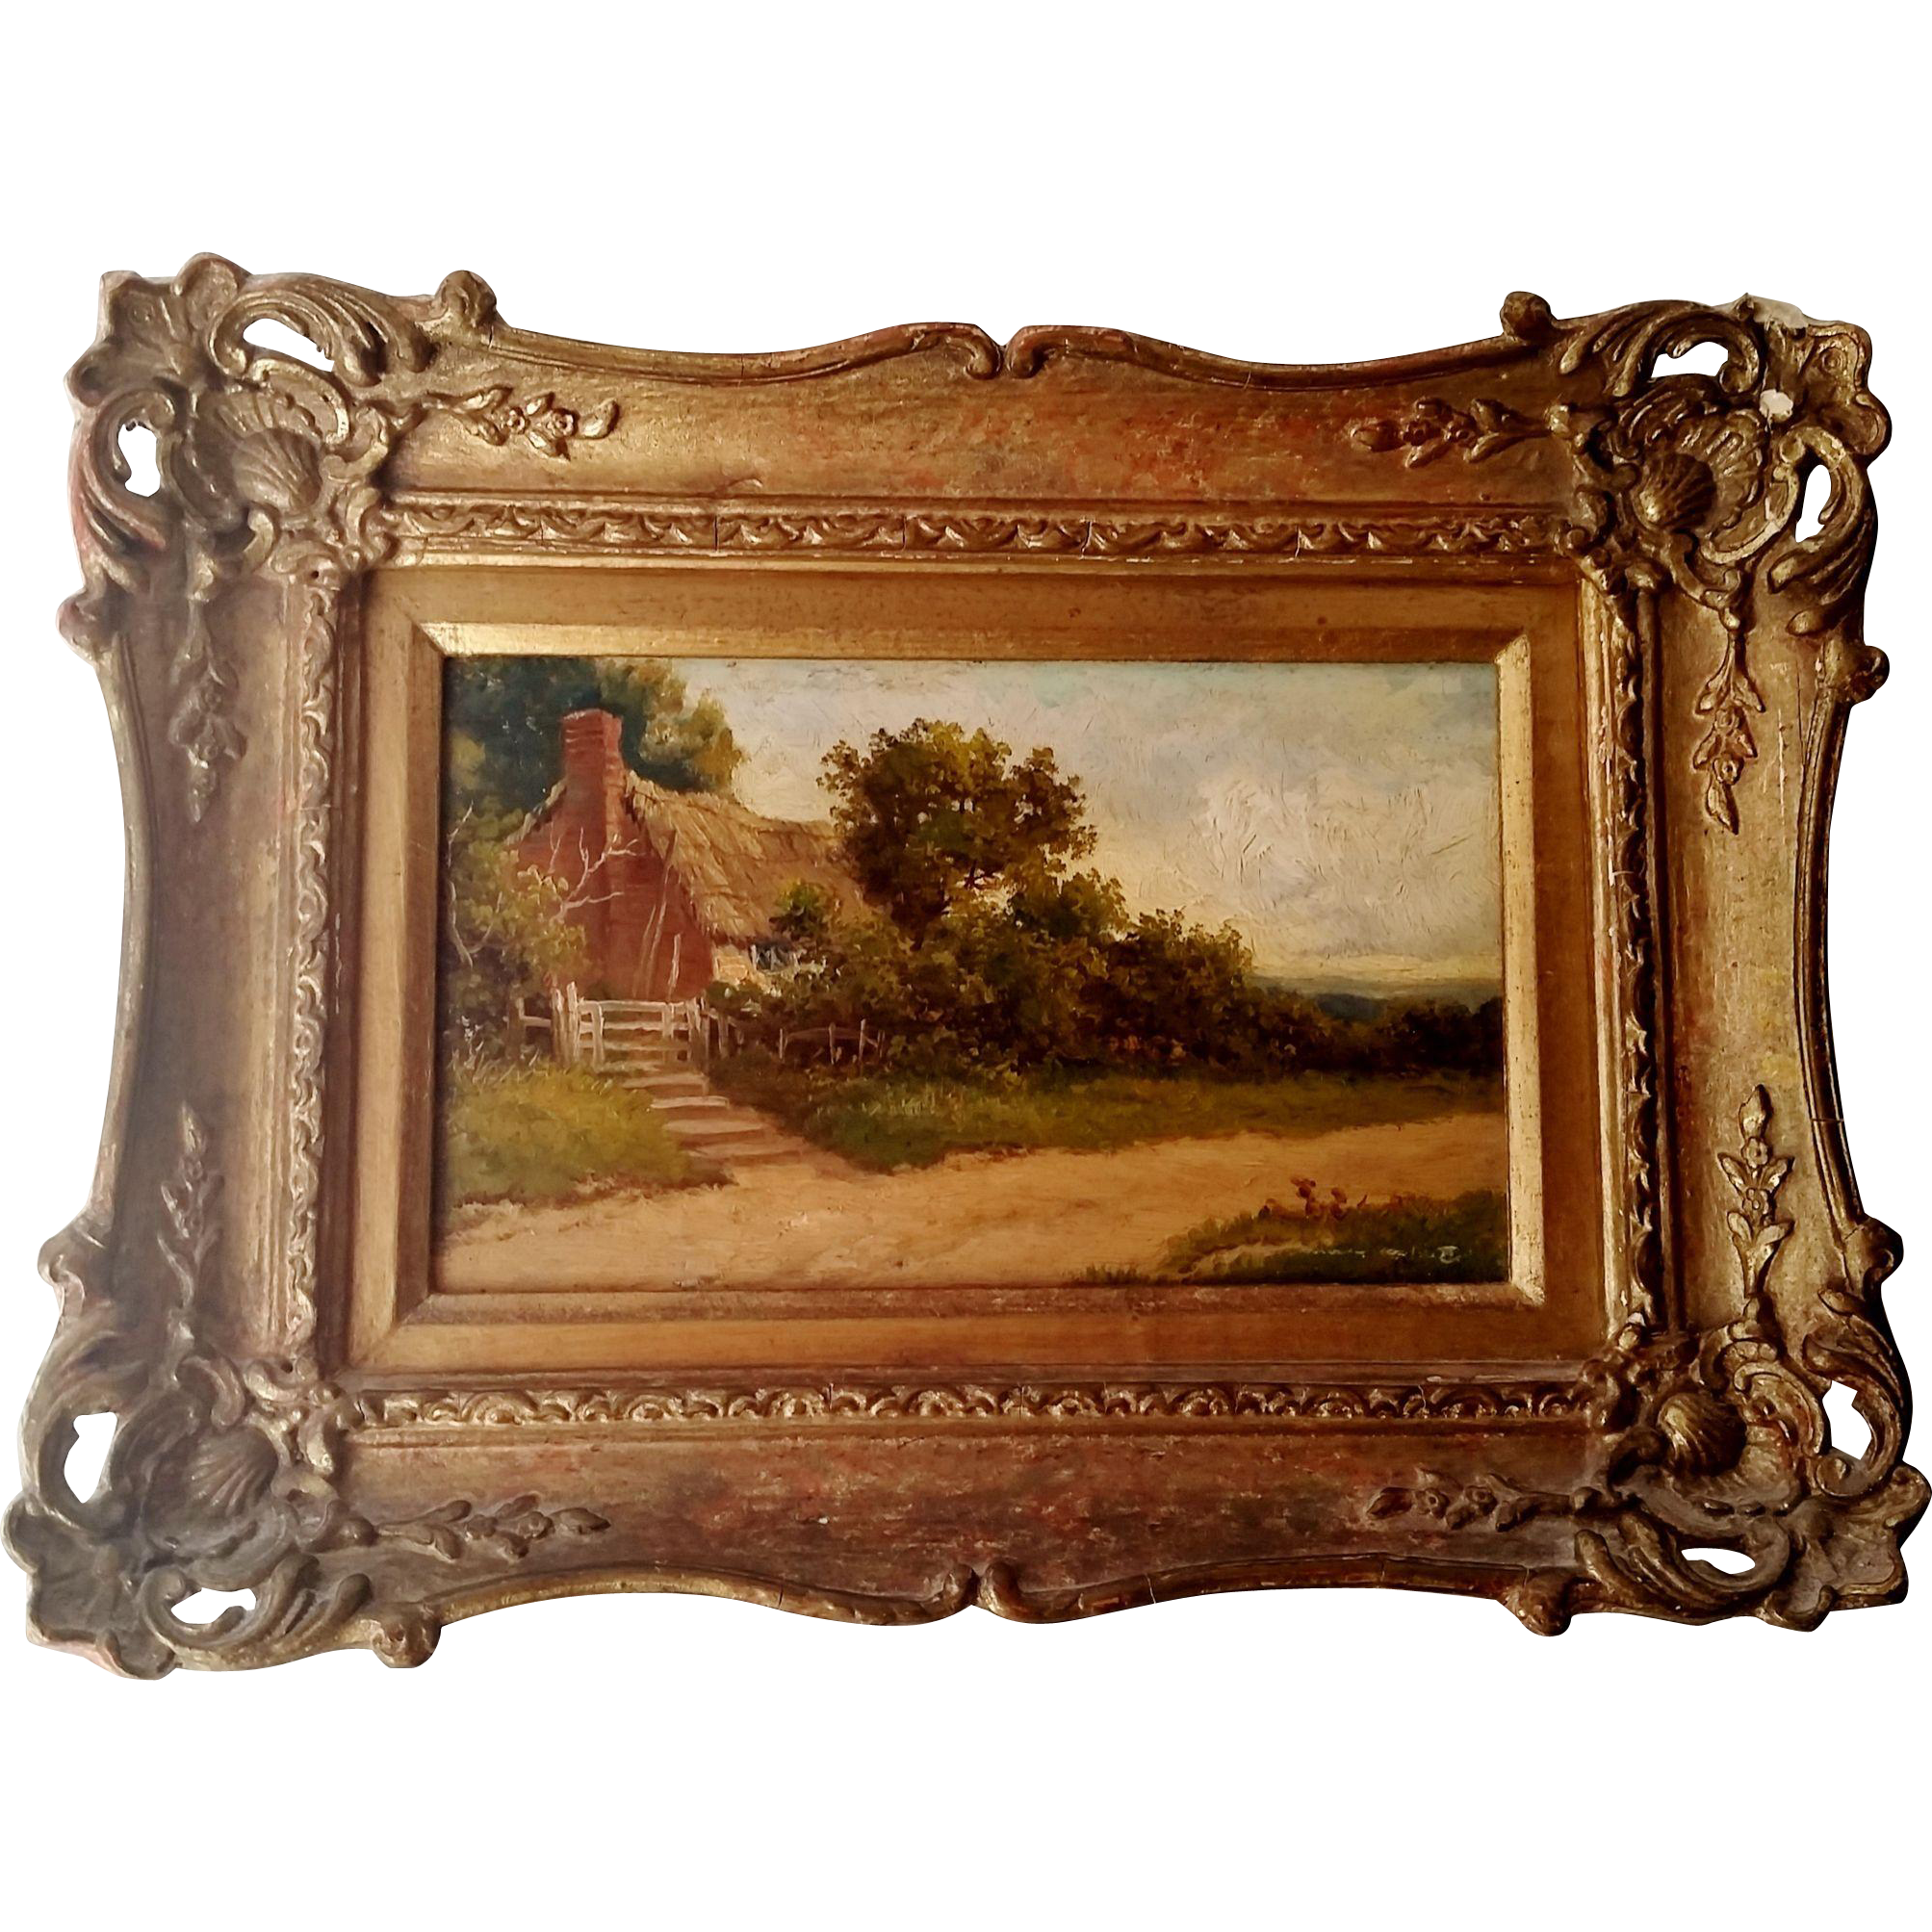 Landscape Painting Oil on Board Gilt Frame Vintage